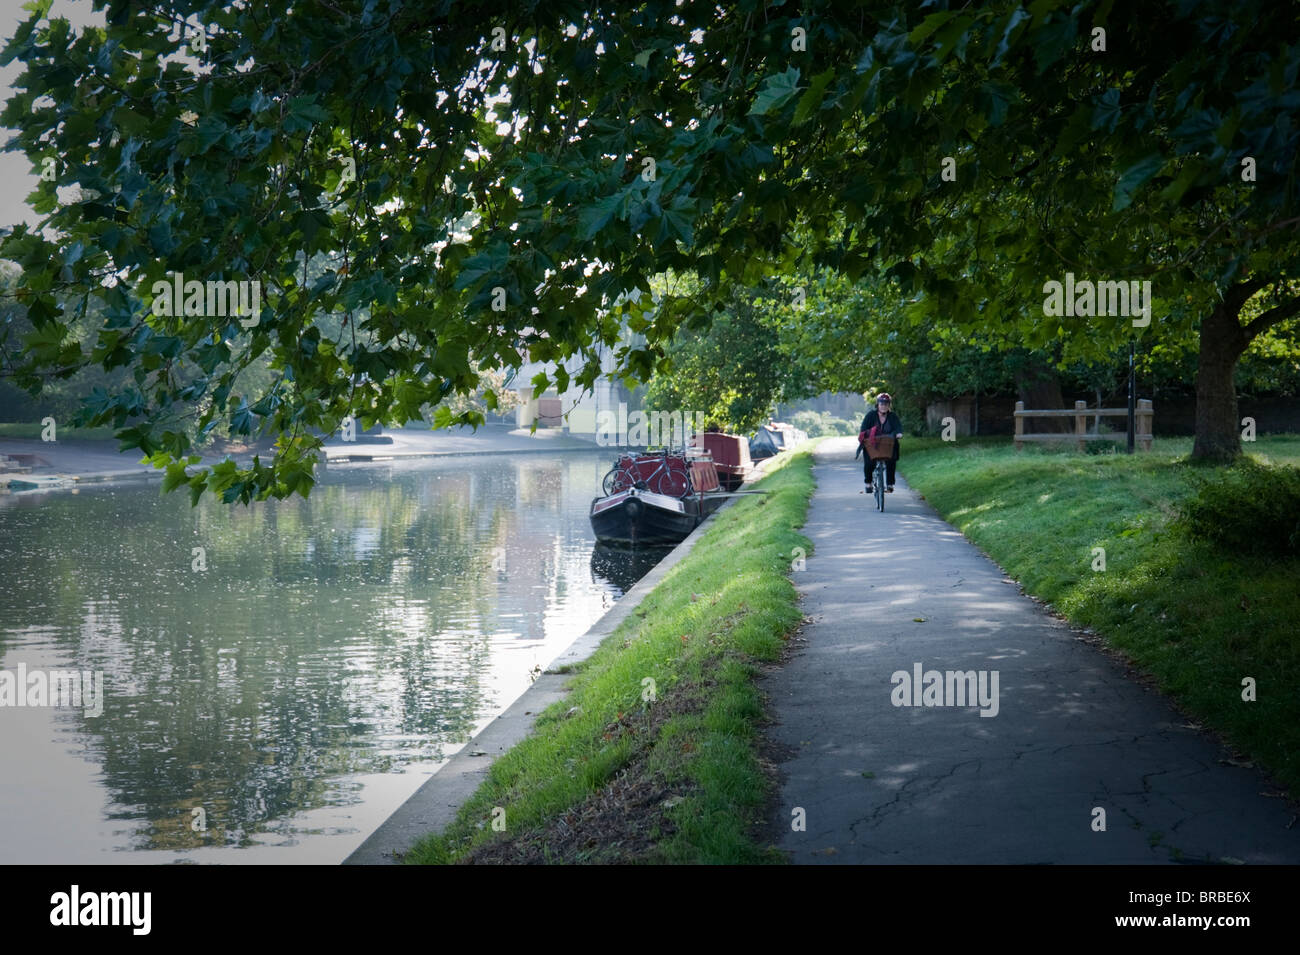 Lone cyclist on towpath along the River Cam in Cambridge, passing moored boats, in early morning autumn light. - Stock Image